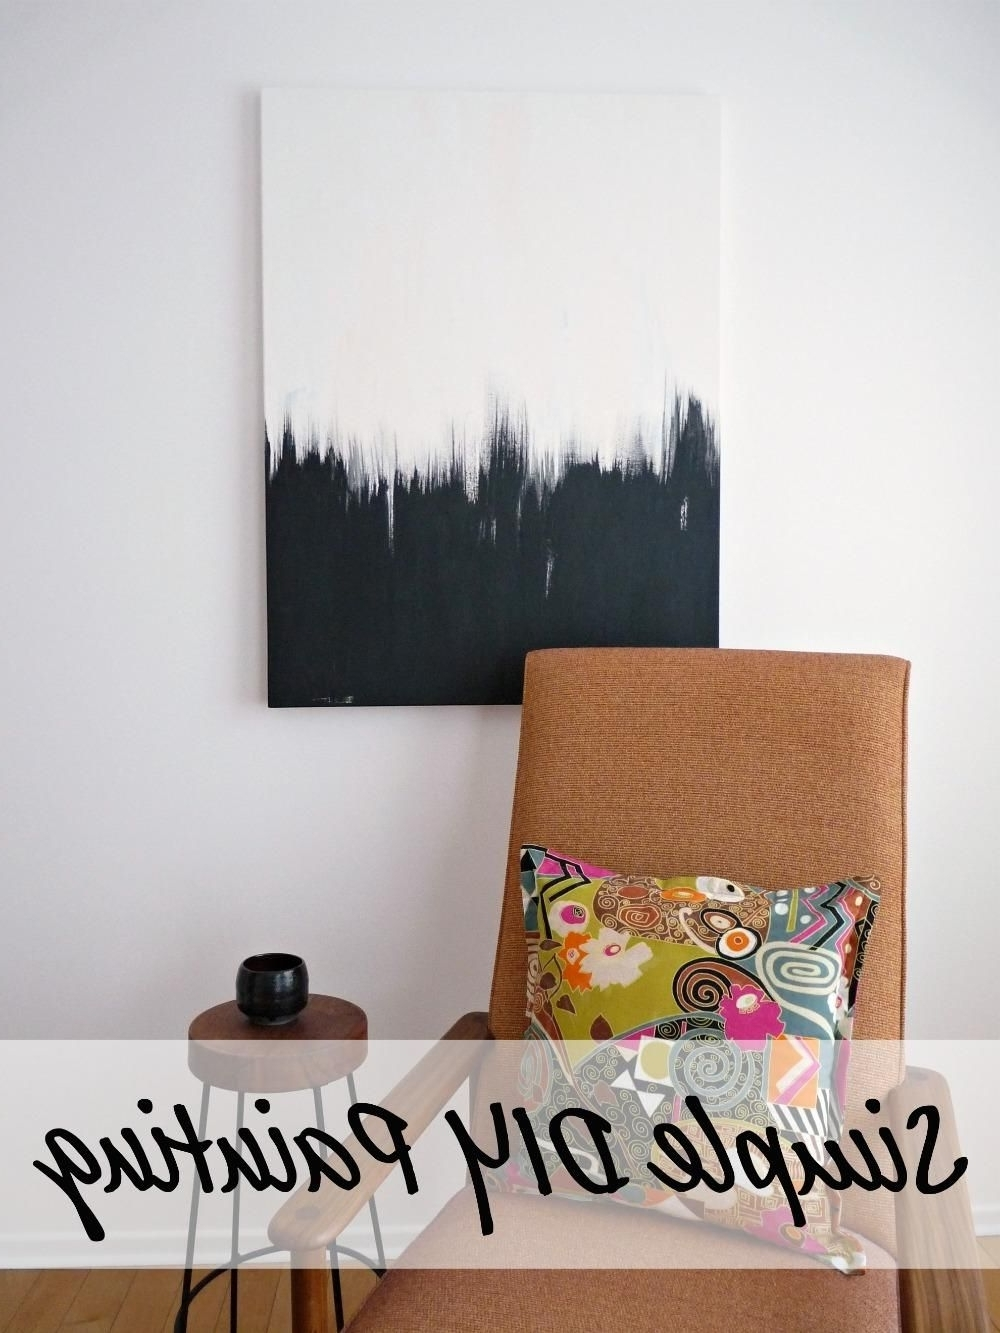 Most Recent Wall Art Diy In Diy Wall Art: Simple But Striking Diy Black And White Wall Art (View 14 of 15)